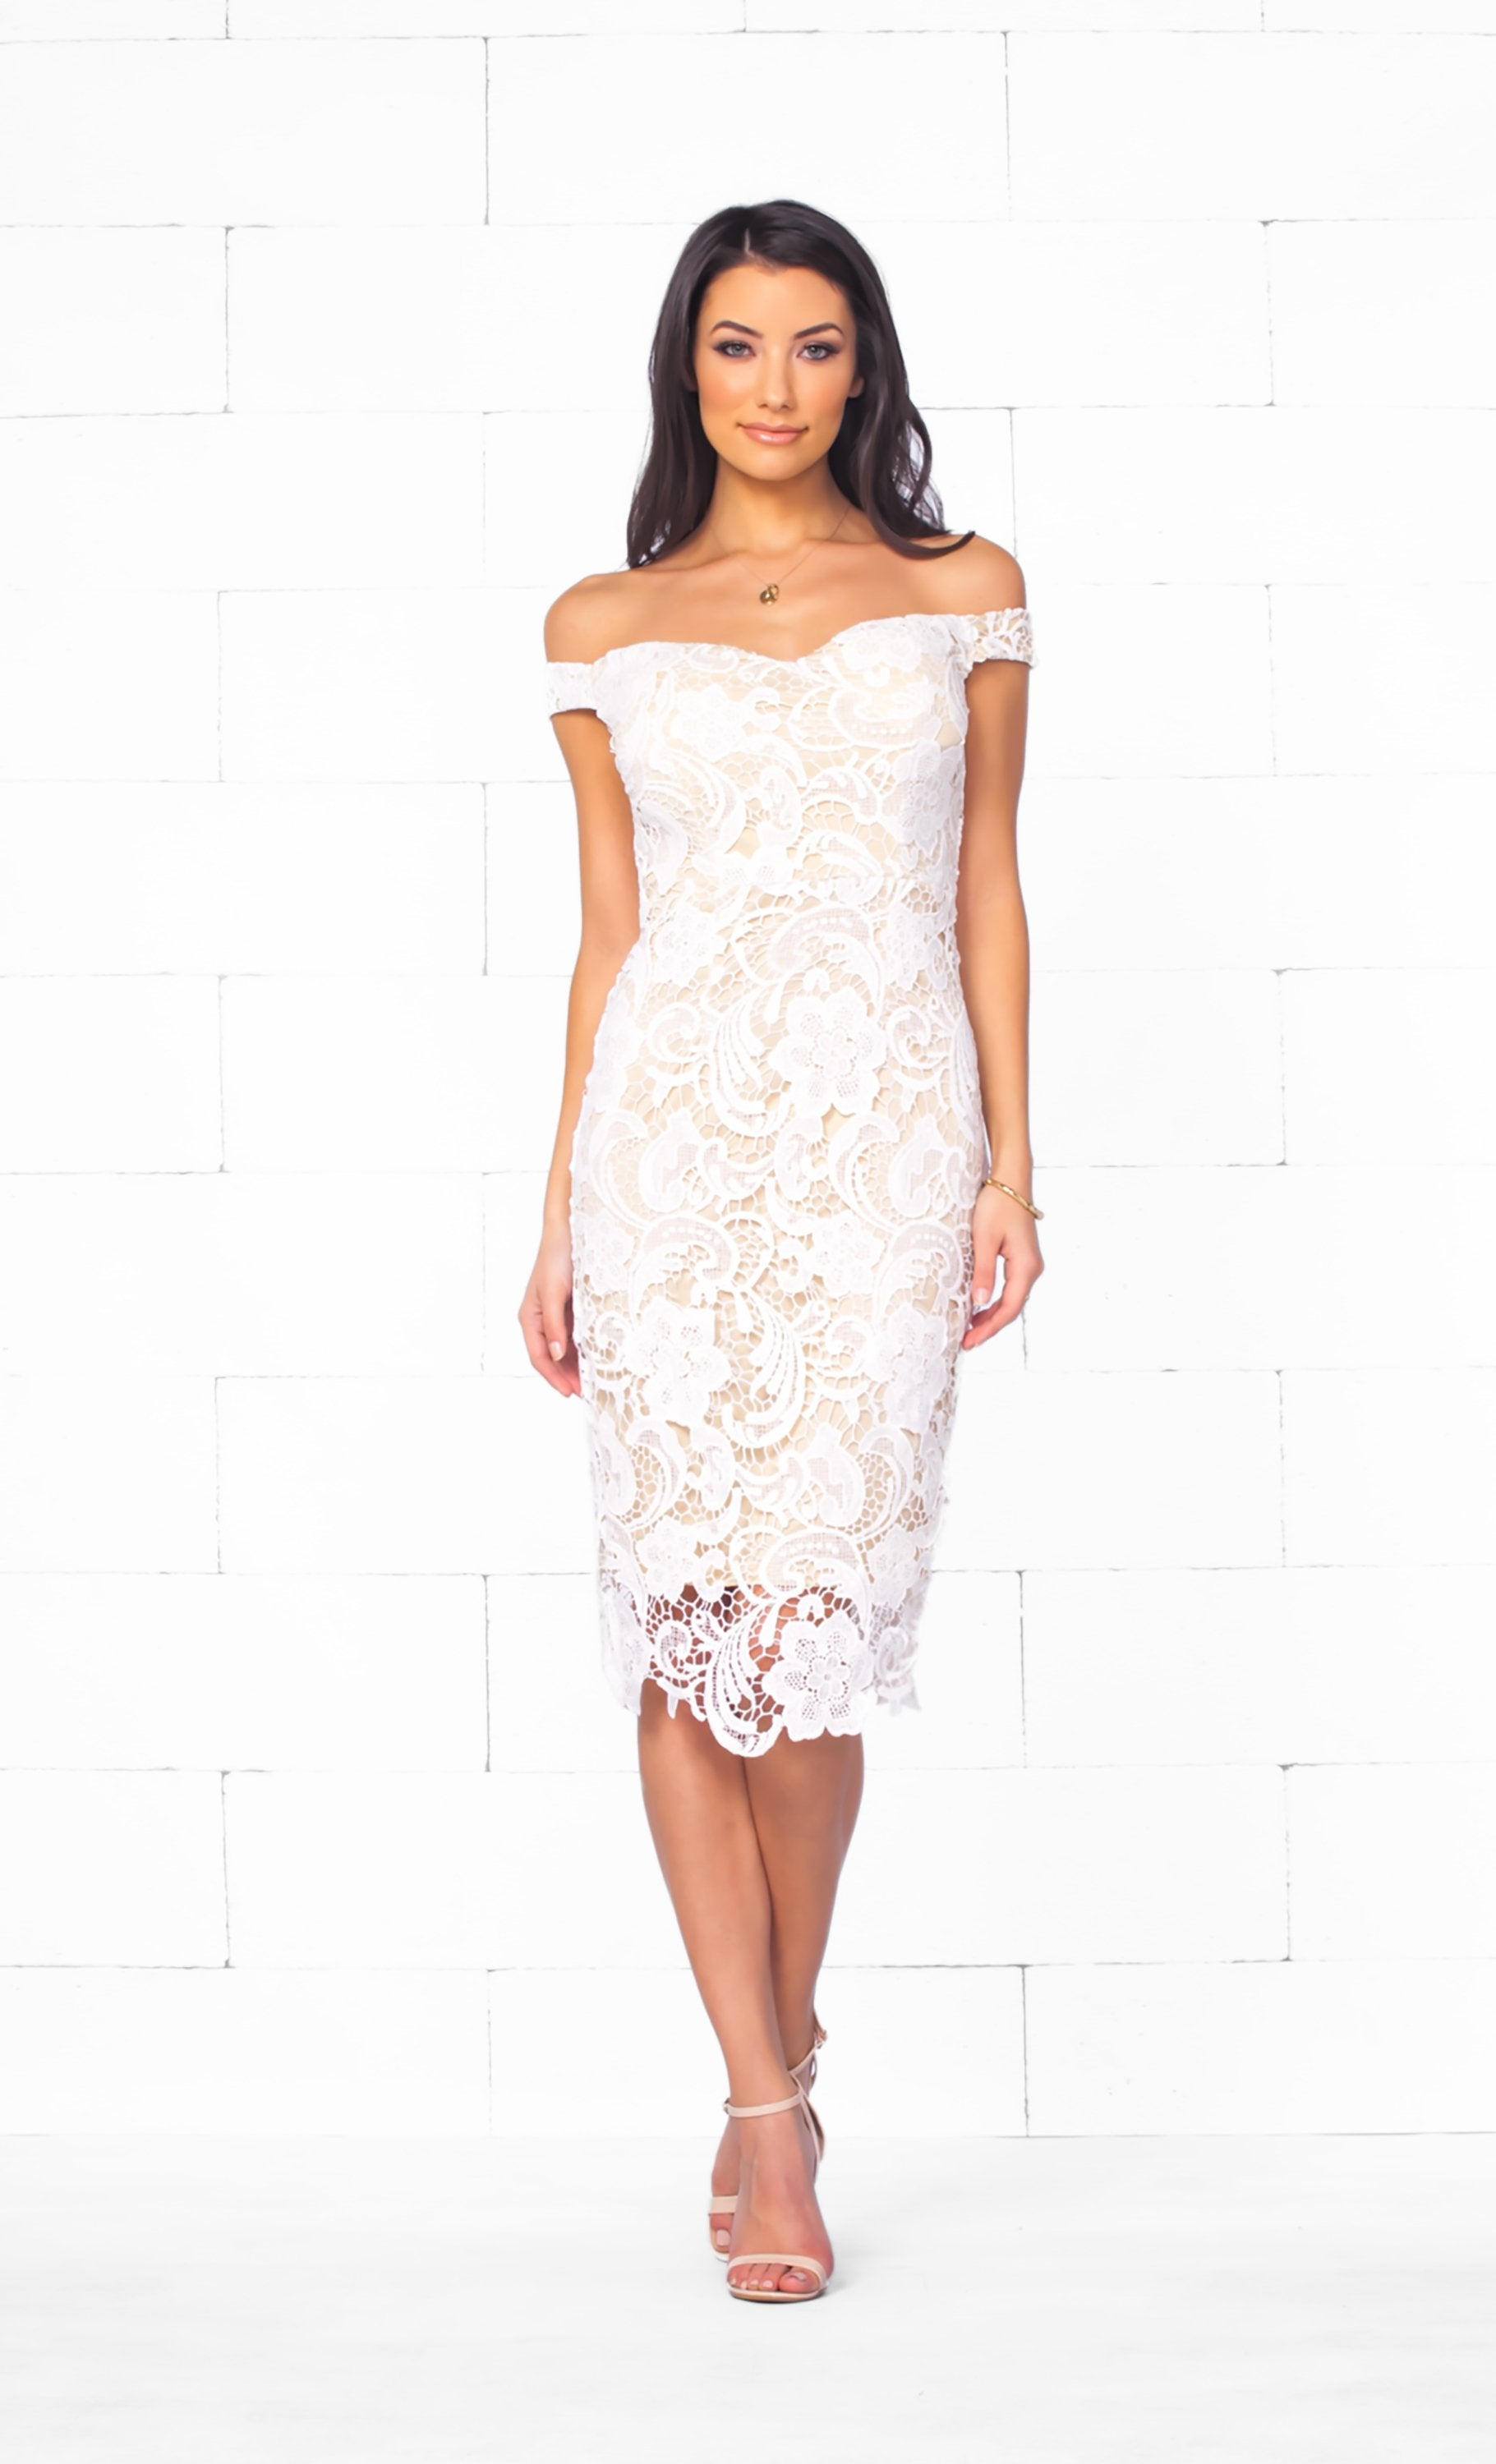 Indie XO At Last White Beige Lace Off The Shoulder Sweetheart Neck Bodycon Midi Dress - Just Ours! - Sold out!